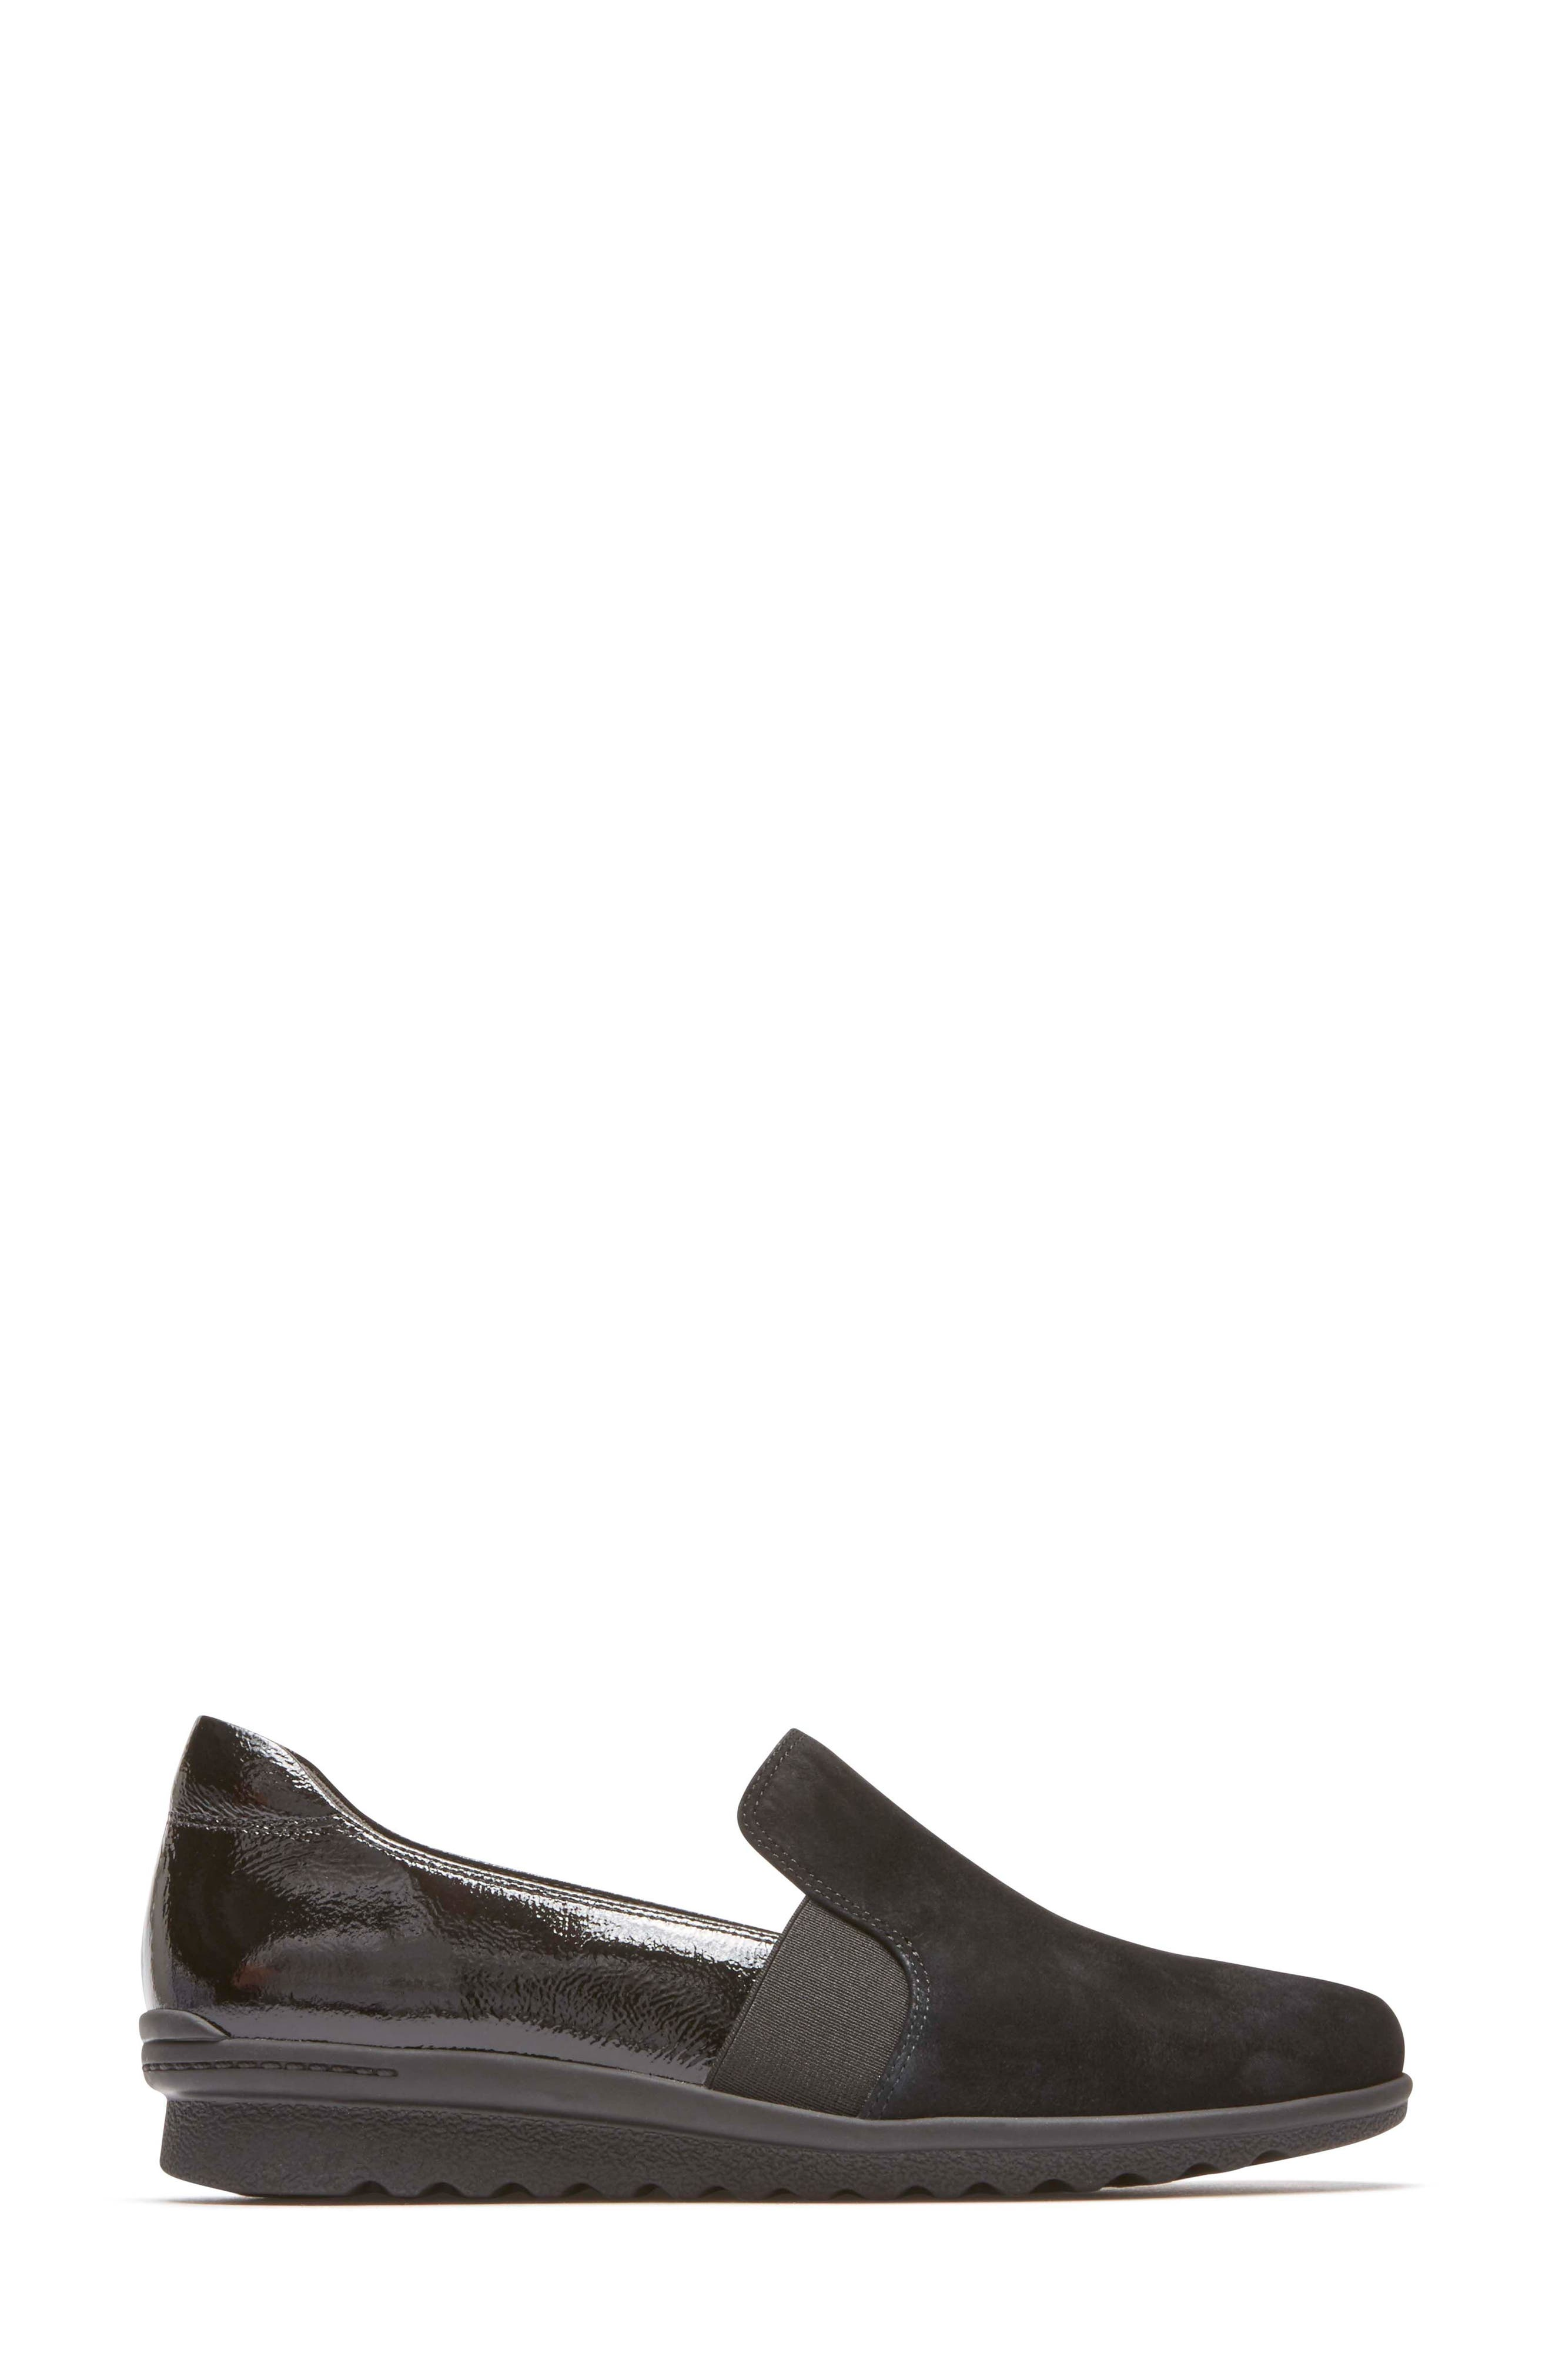 Chenole Loafer,                             Alternate thumbnail 3, color,                             BLACK SUEDE